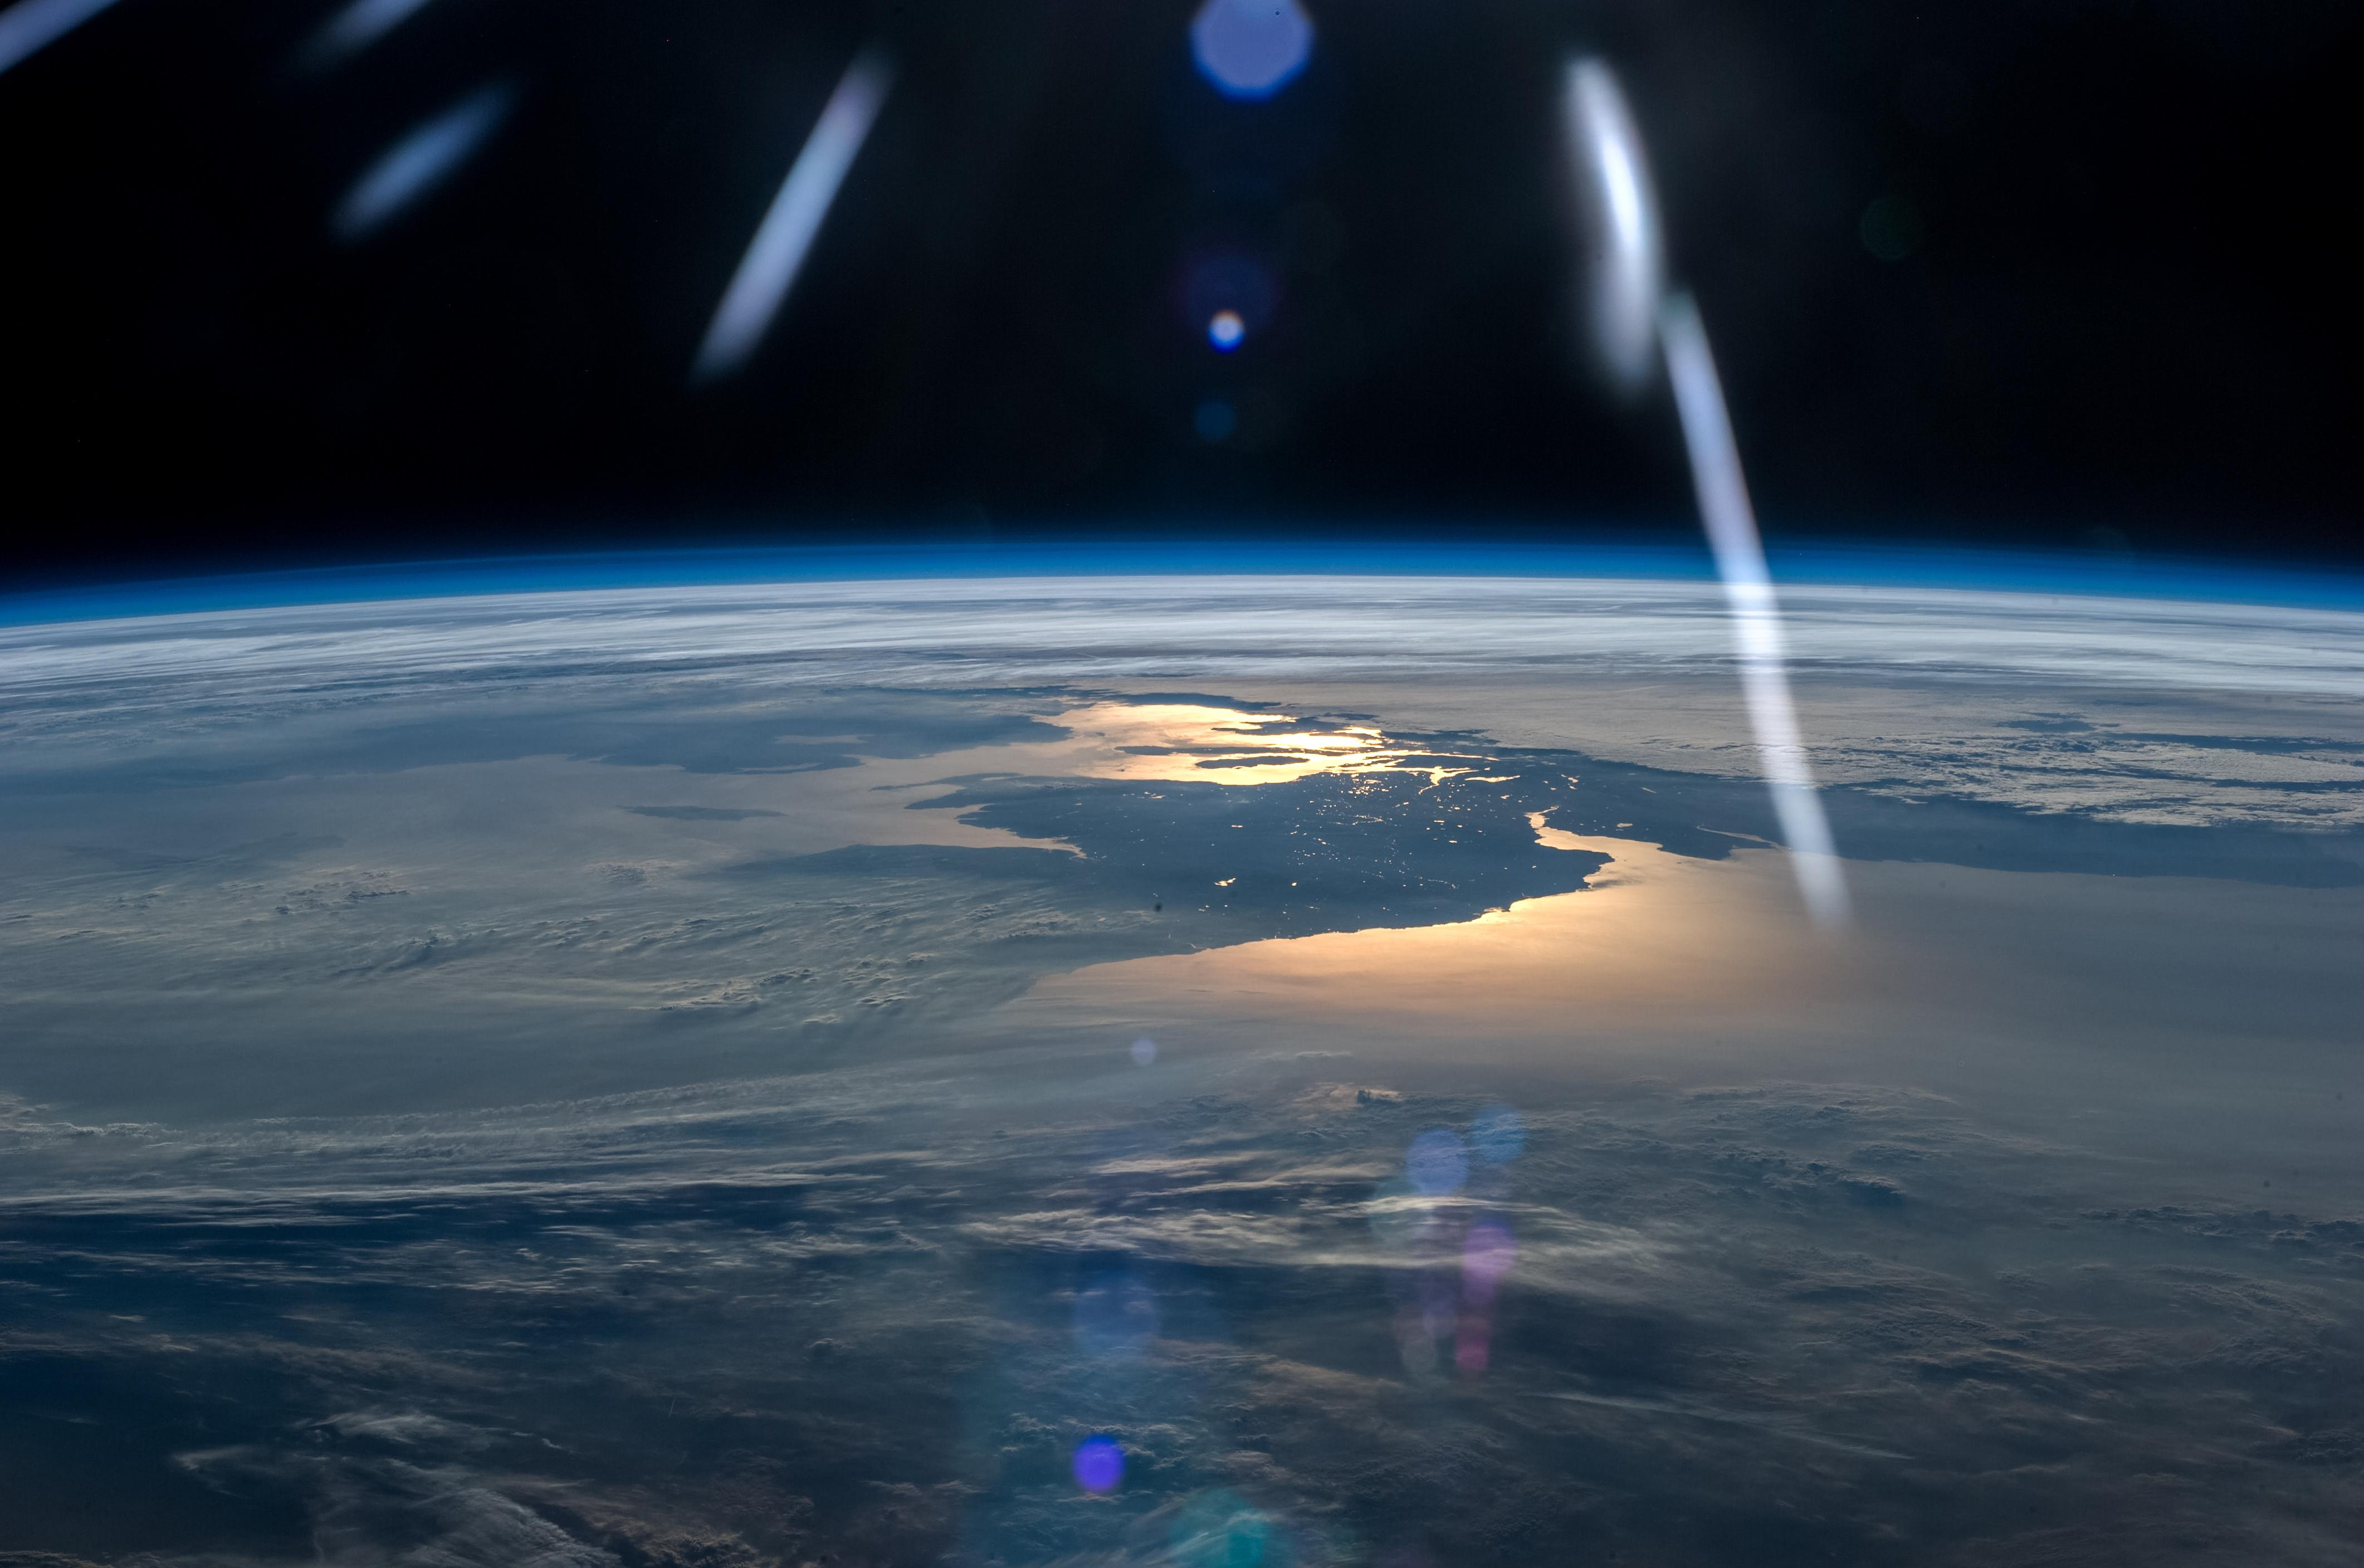 Astronaut Captures Day Meeting Night In Beautiful Space Photo